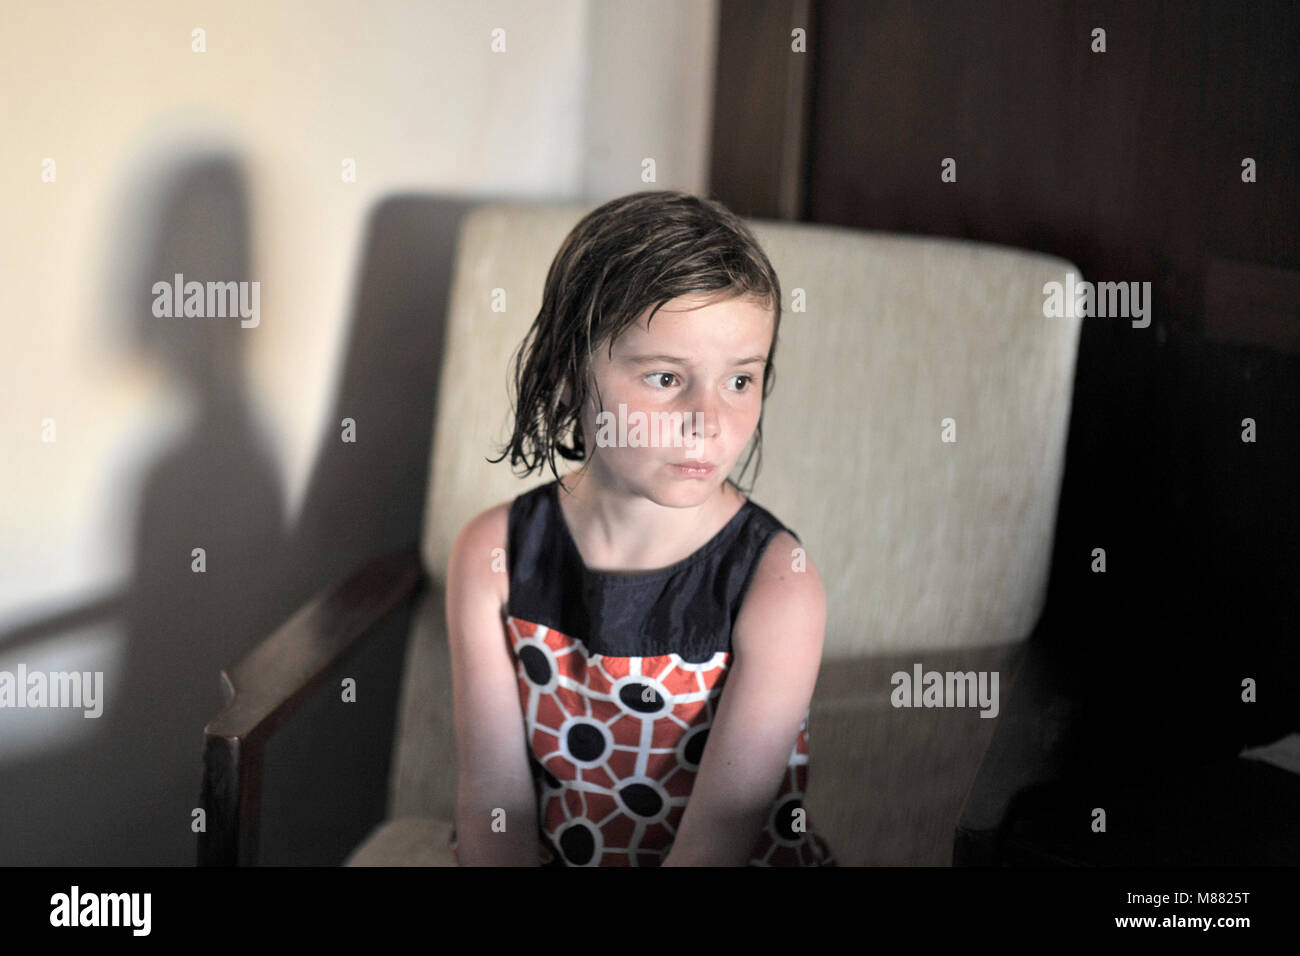 7 year old girl sitting alone with wet hair - Stock Image